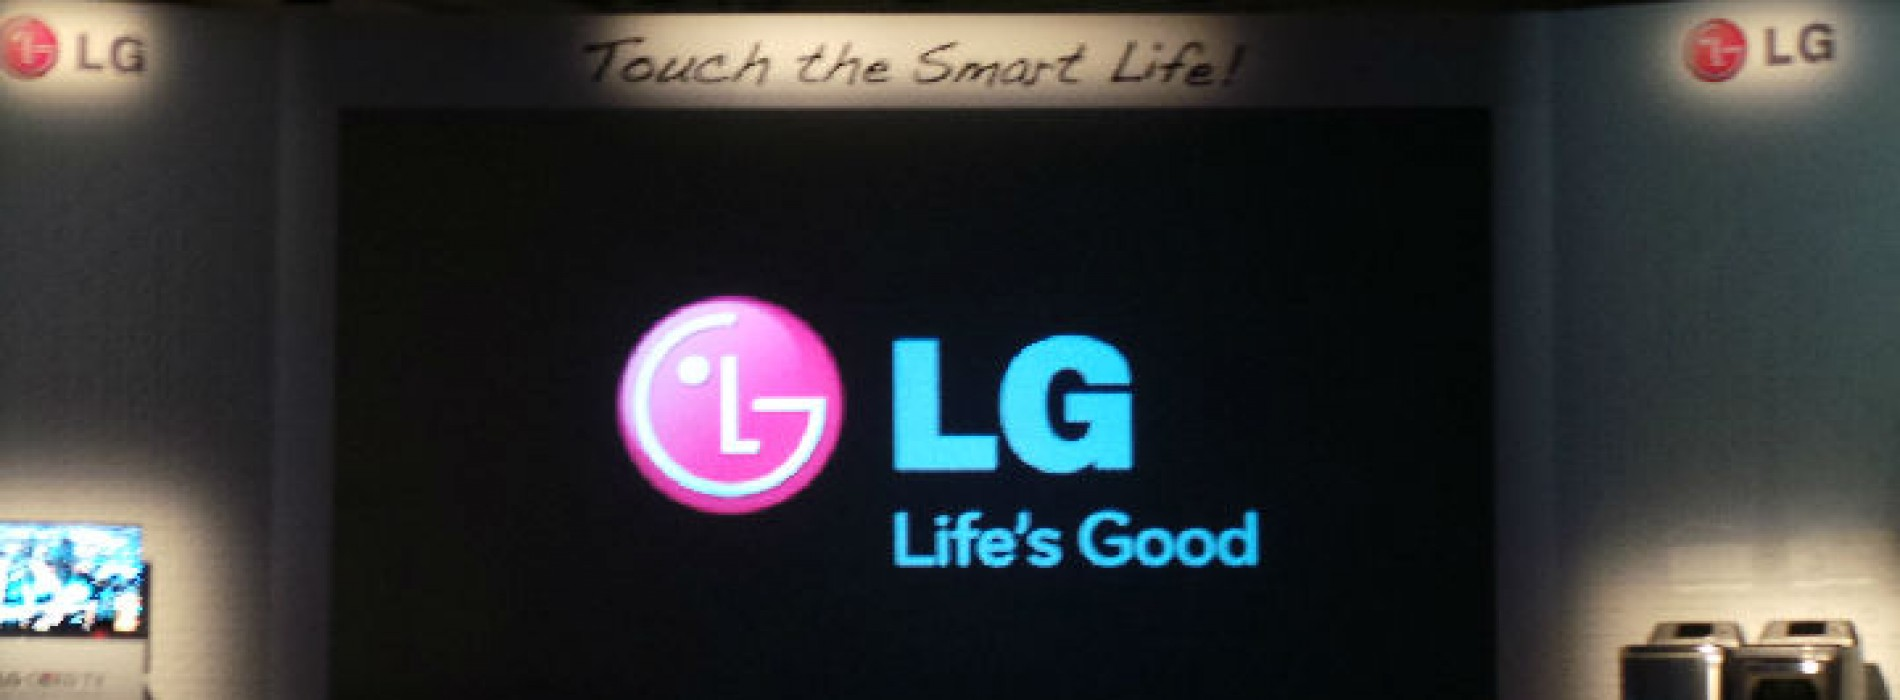 LG CES 2013 press announcement 'Touch the Smart Life'